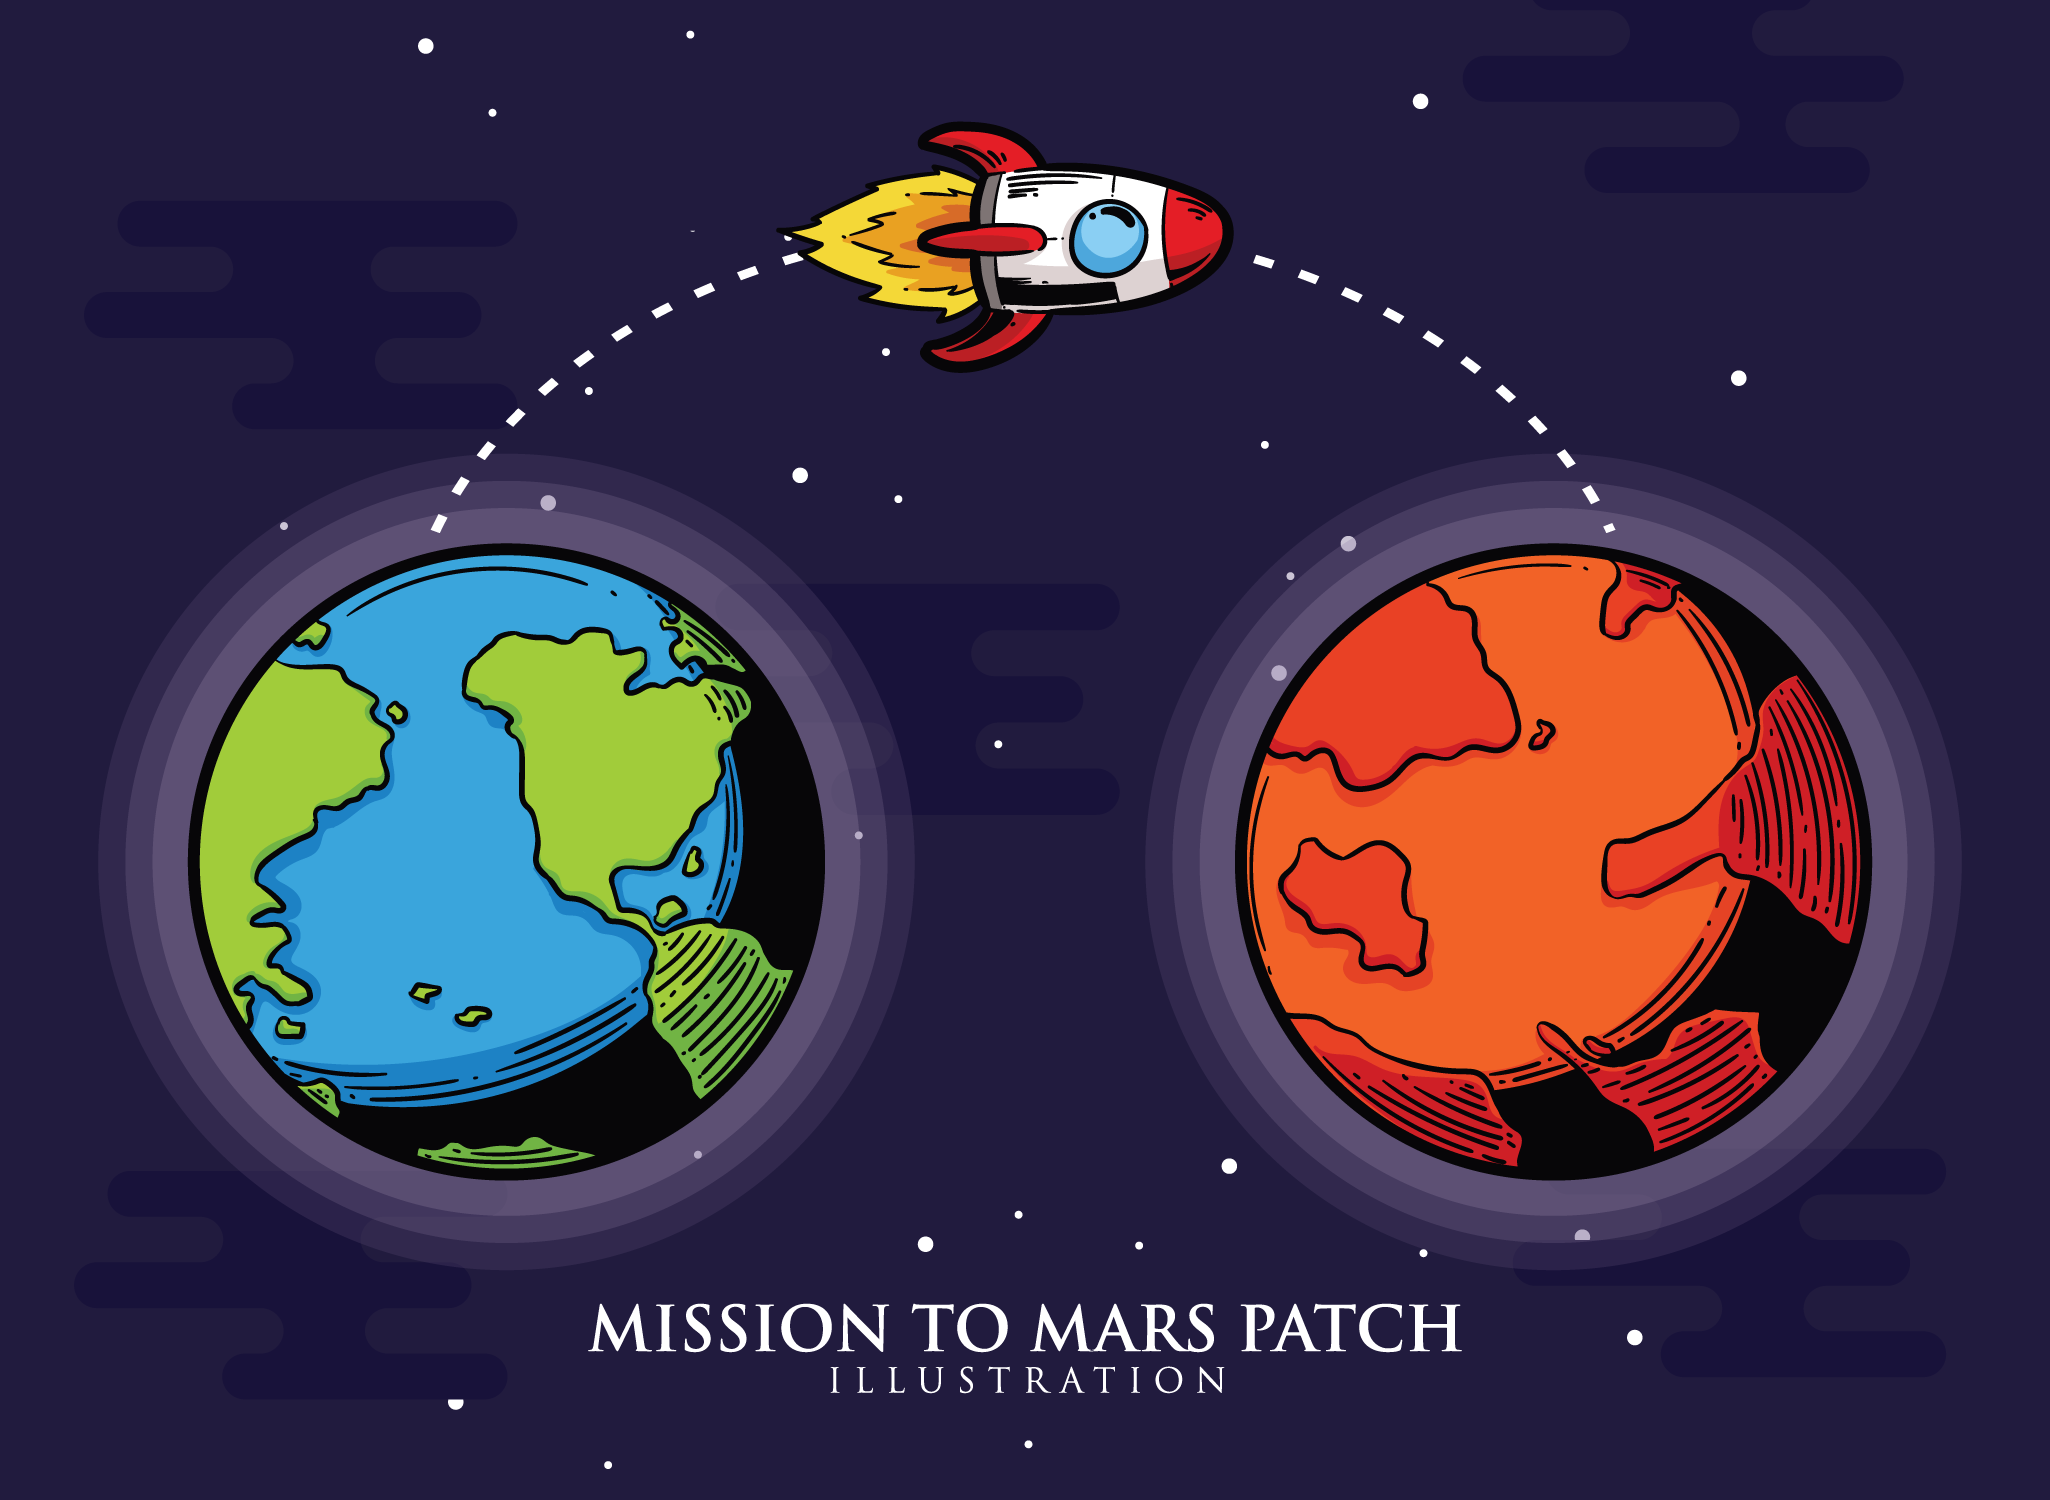 Mission To Mars Patch - Download Free Vector Art, Stock ...